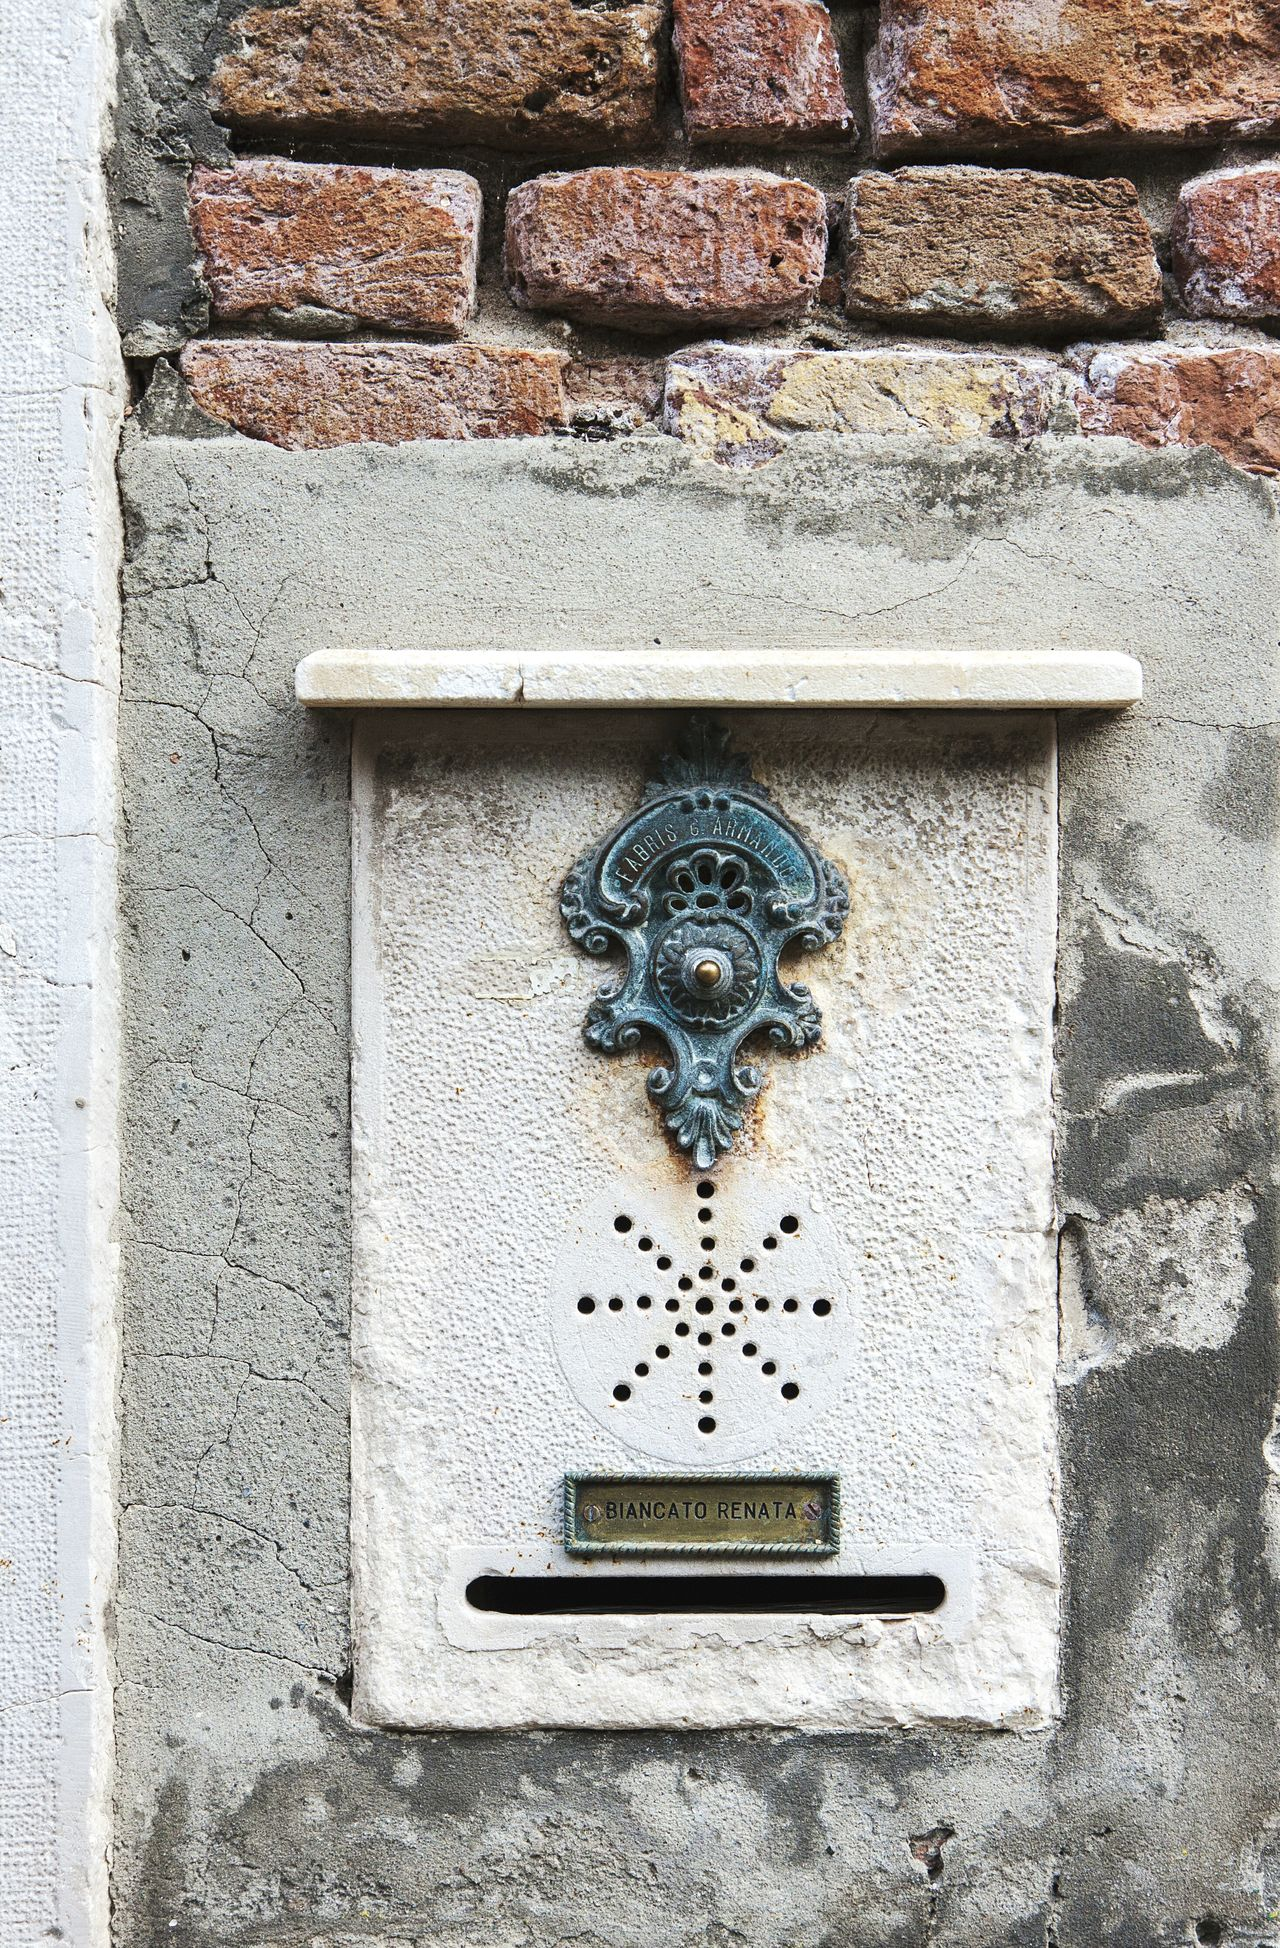 Venice Italy Europe Traveling Architecture Detail Buzzer Ringer Button House Exterior Facades